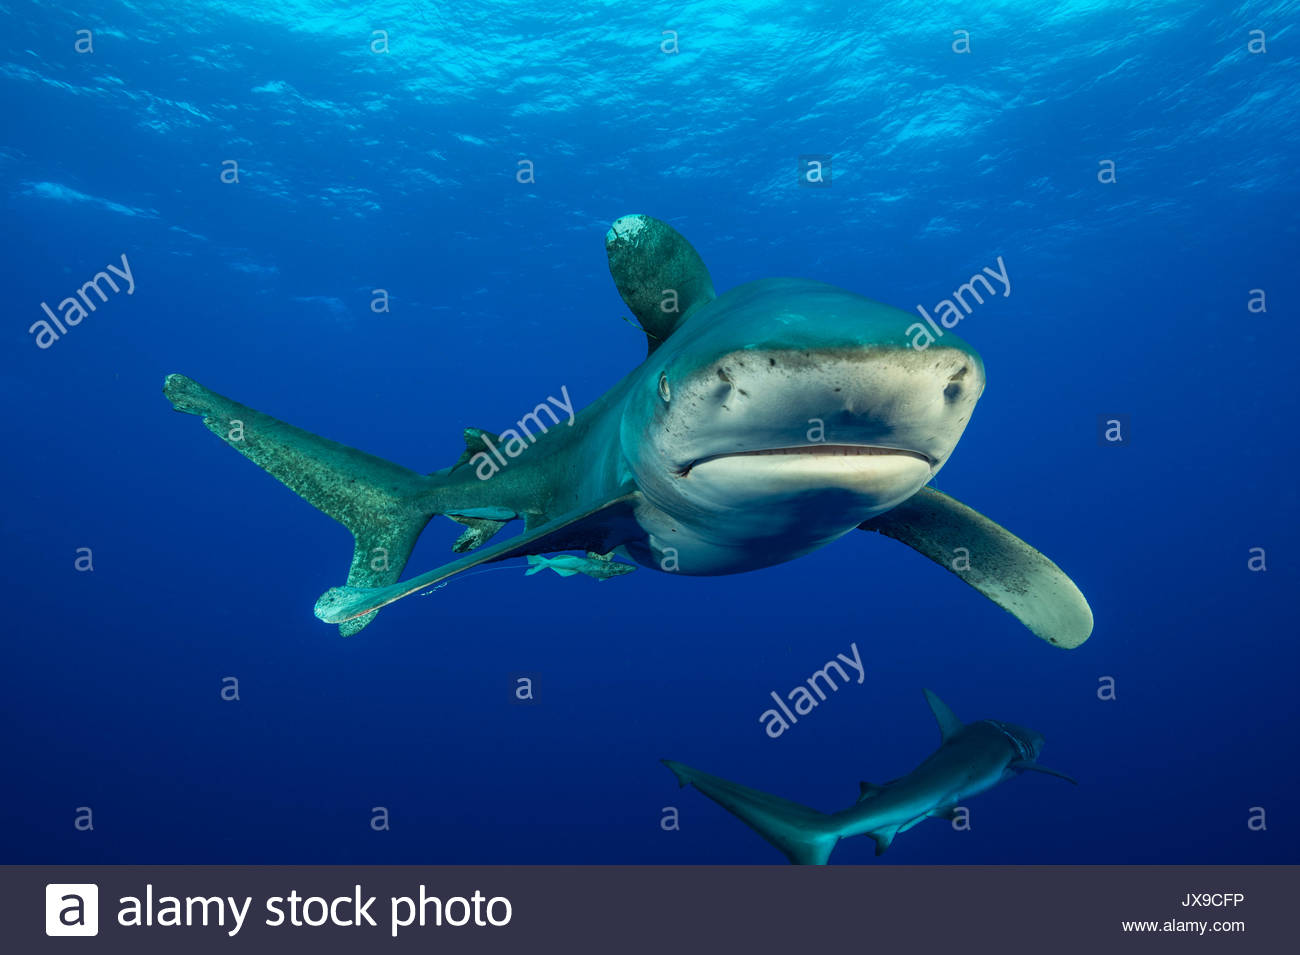 An oceanic whitetip shark, Carcharhinus longimanus, swims in the waters off Cat Island in the Bahamas. - Stock Image